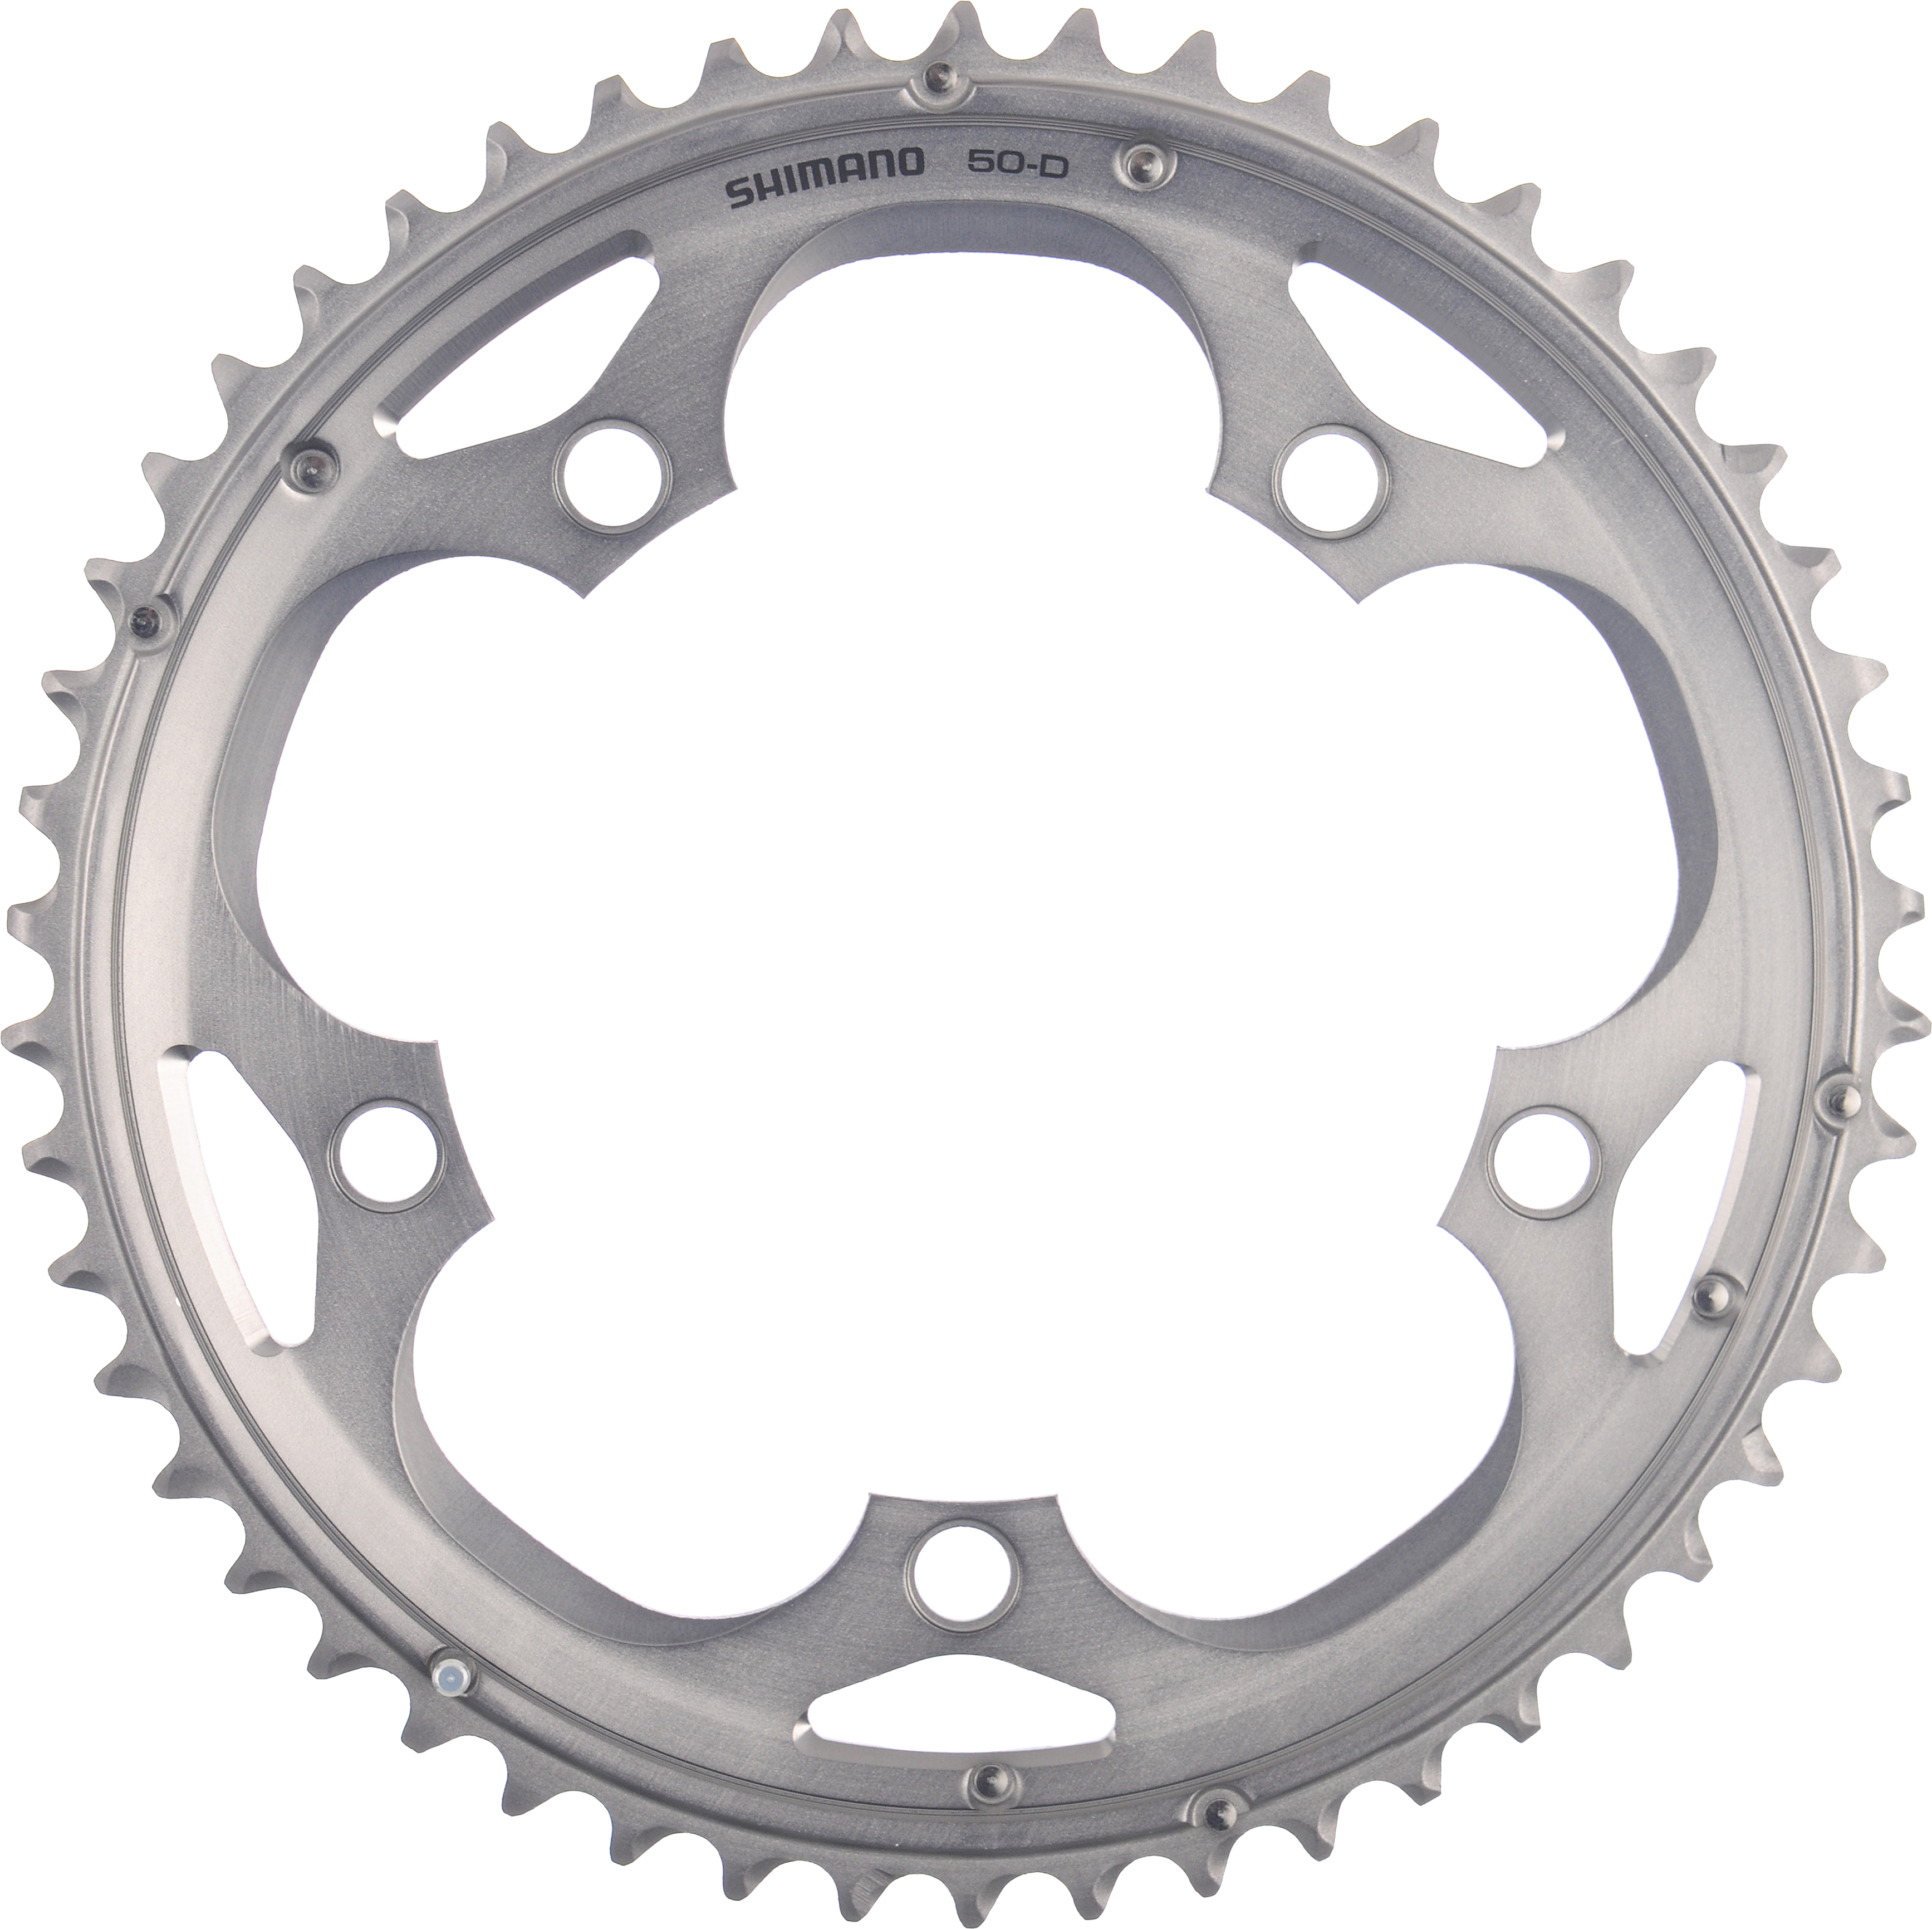 Shimano 105 FC5703 10 Speed Triple Chanrings | chainrings_component